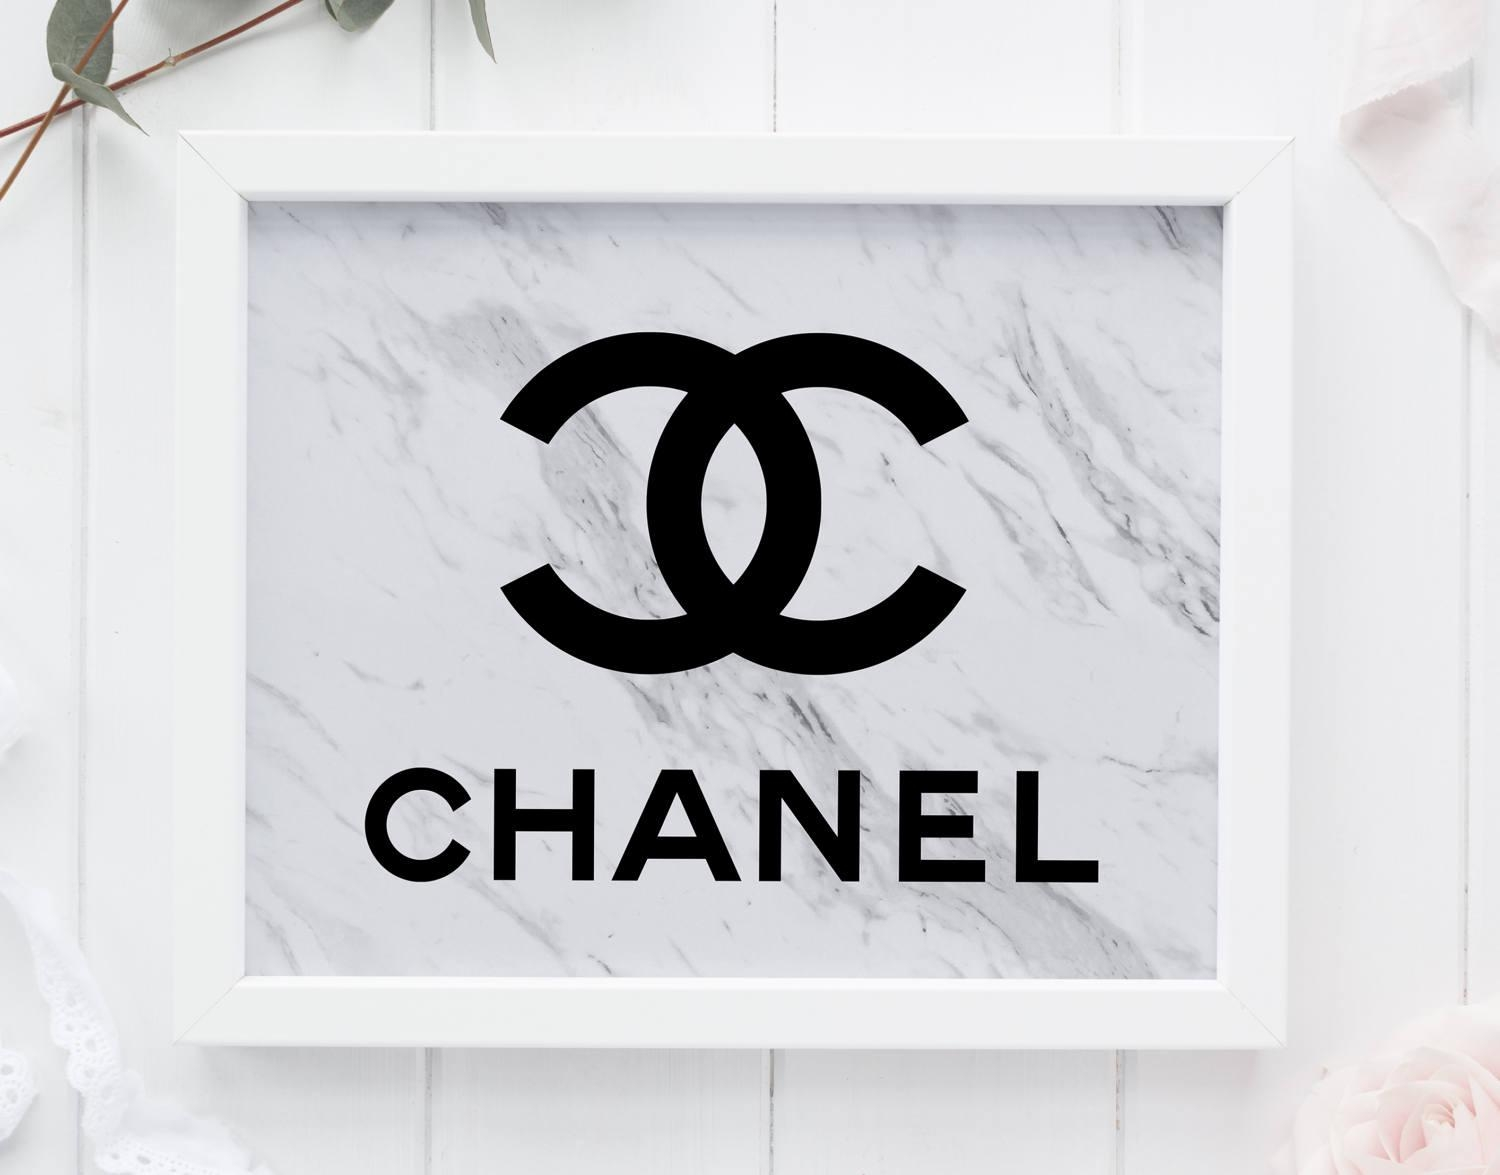 Marble Coco Chanel Tumblr Room Decor Chanel Wall Art Marble In Coco Chanel Wall Decals (  sc 1 st  tany.net & Wall Art Ideas: Coco Chanel Wall Decals (Explore #20 of 20 Photos)